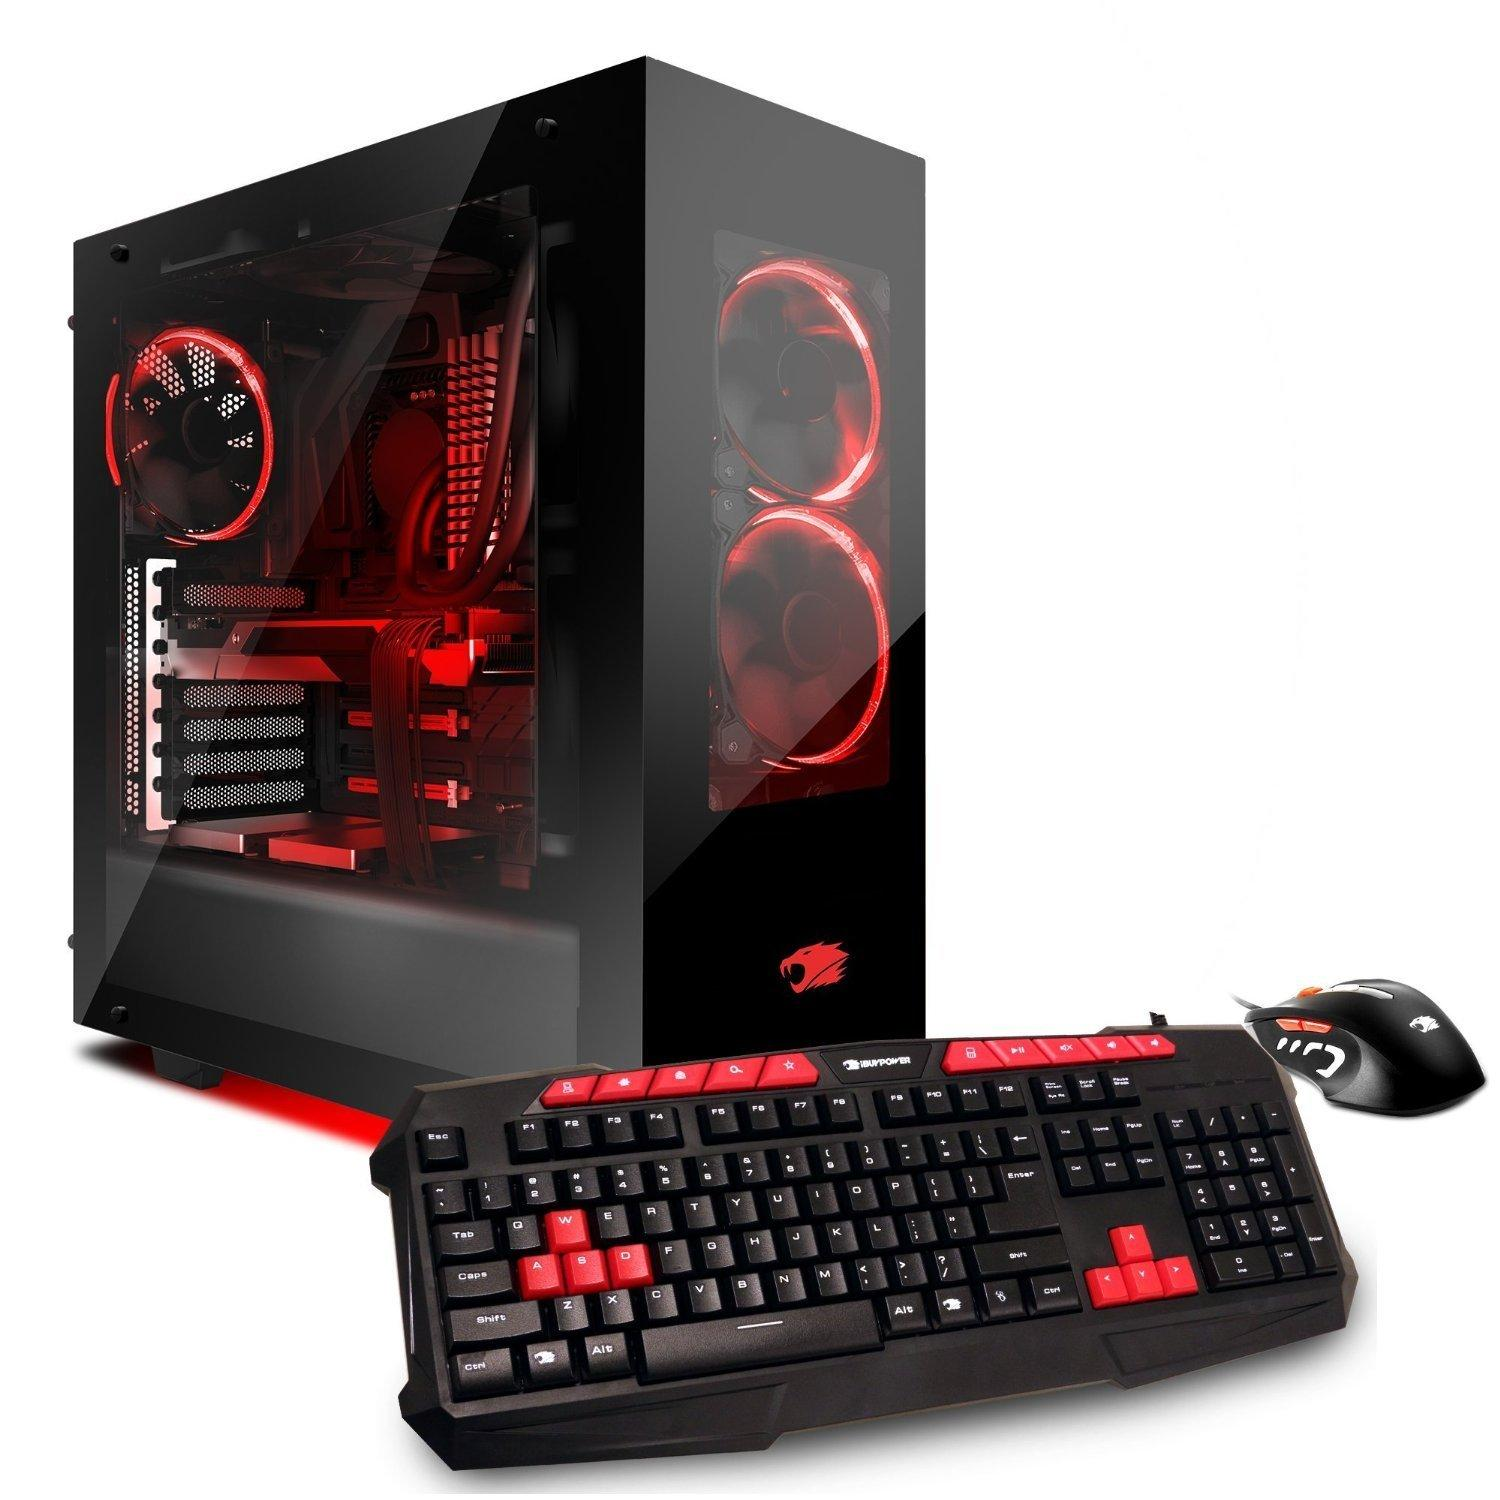 Amazon.com: iBUYPOWER AM002i Desktop Gaming PC - Intel i7